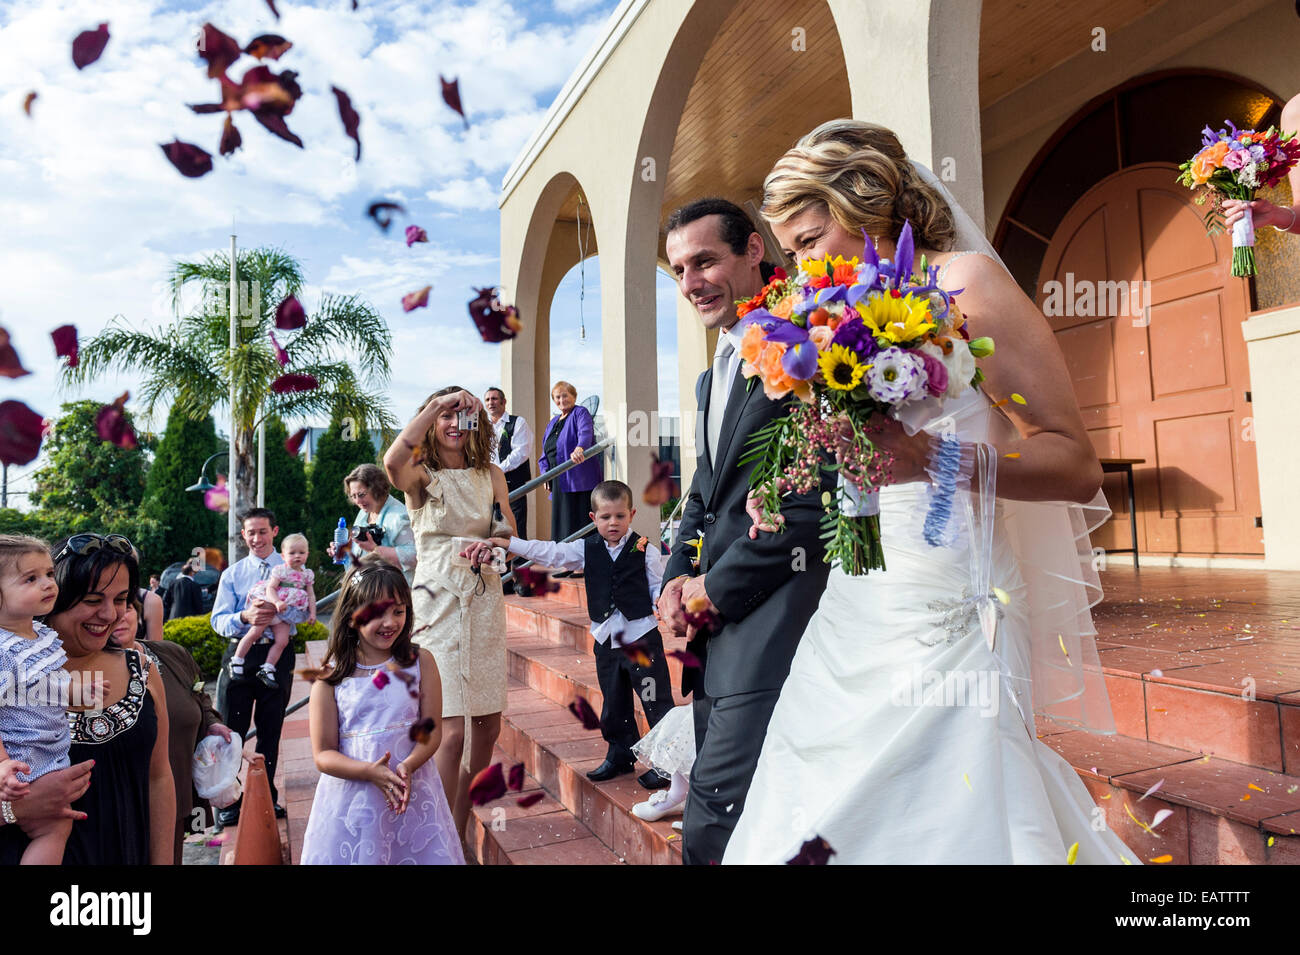 Confetti and rose petal shower a bride and groom at a Greek